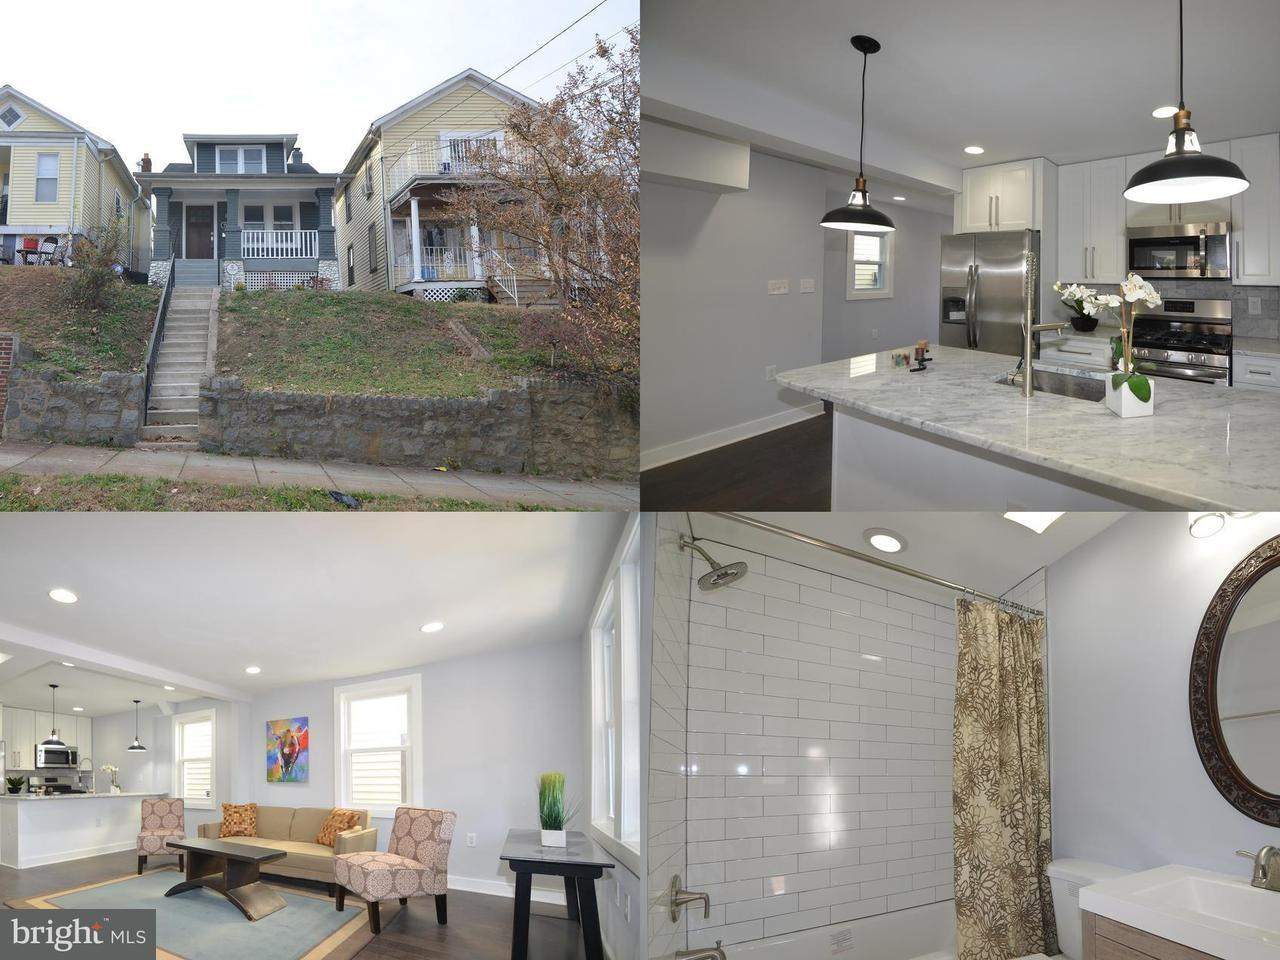 Single Family Home for Sale at 1517 25TH ST SE 1517 25TH ST SE Washington, District Of Columbia 20020 United States